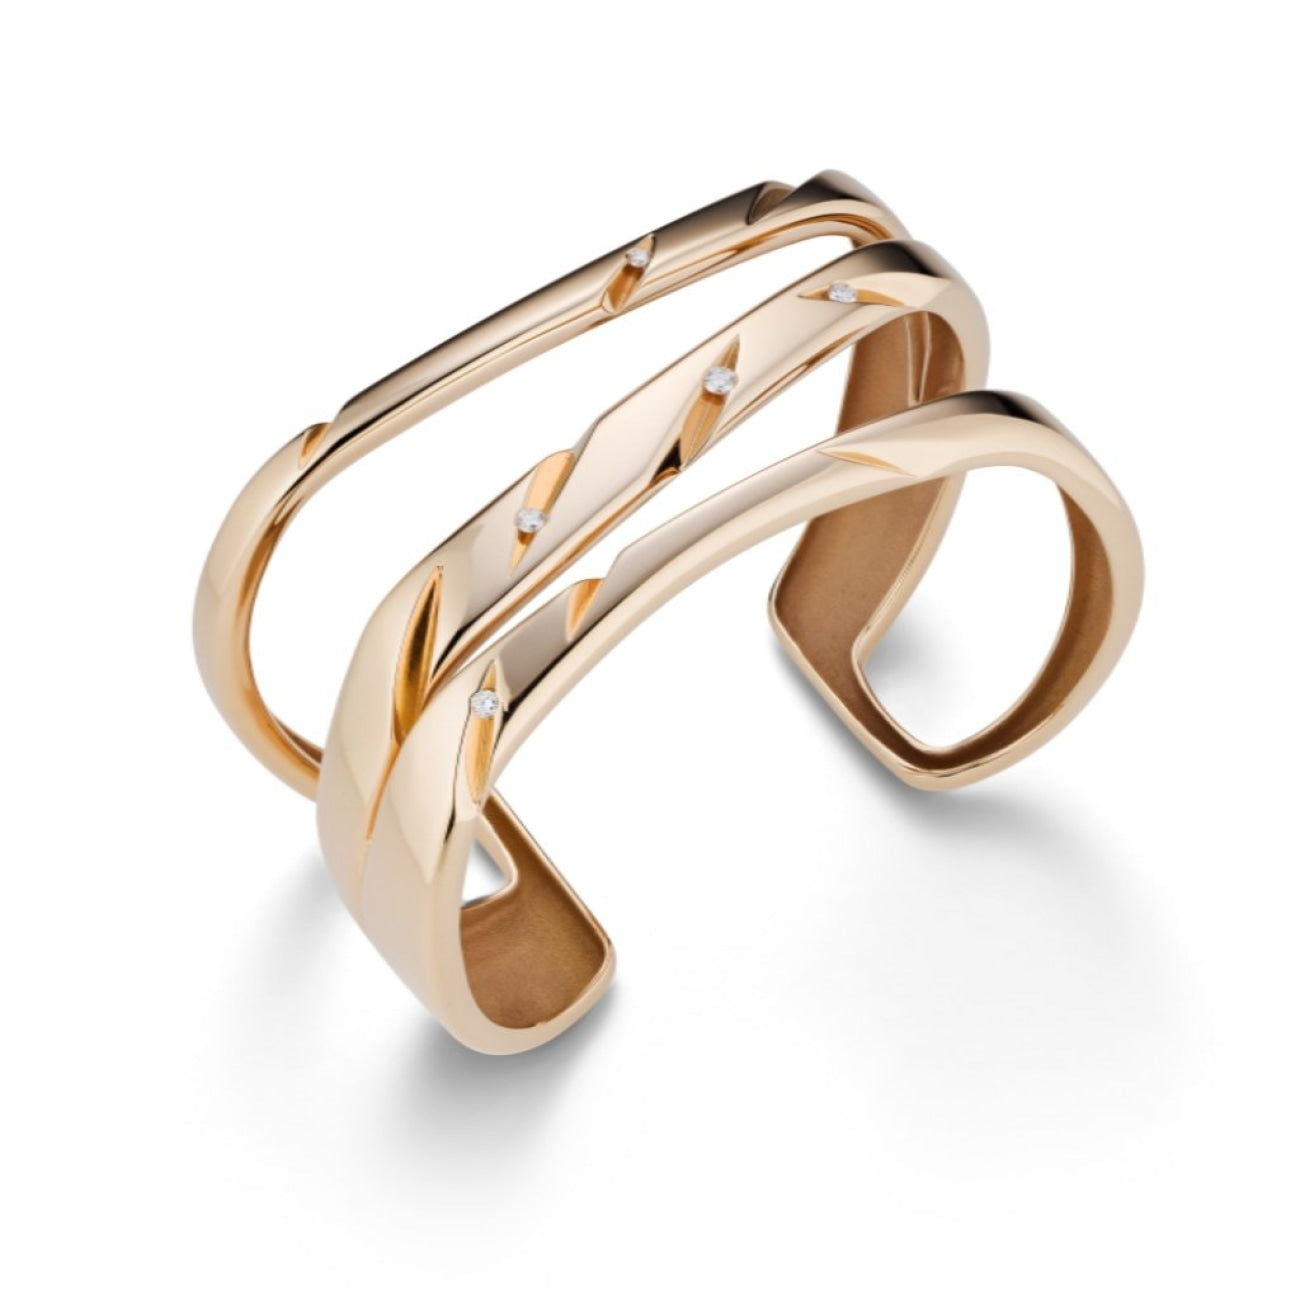 Mattioli Jewelry - CUTS cuff in rose gold and white diamonds | Manfredi Jewels